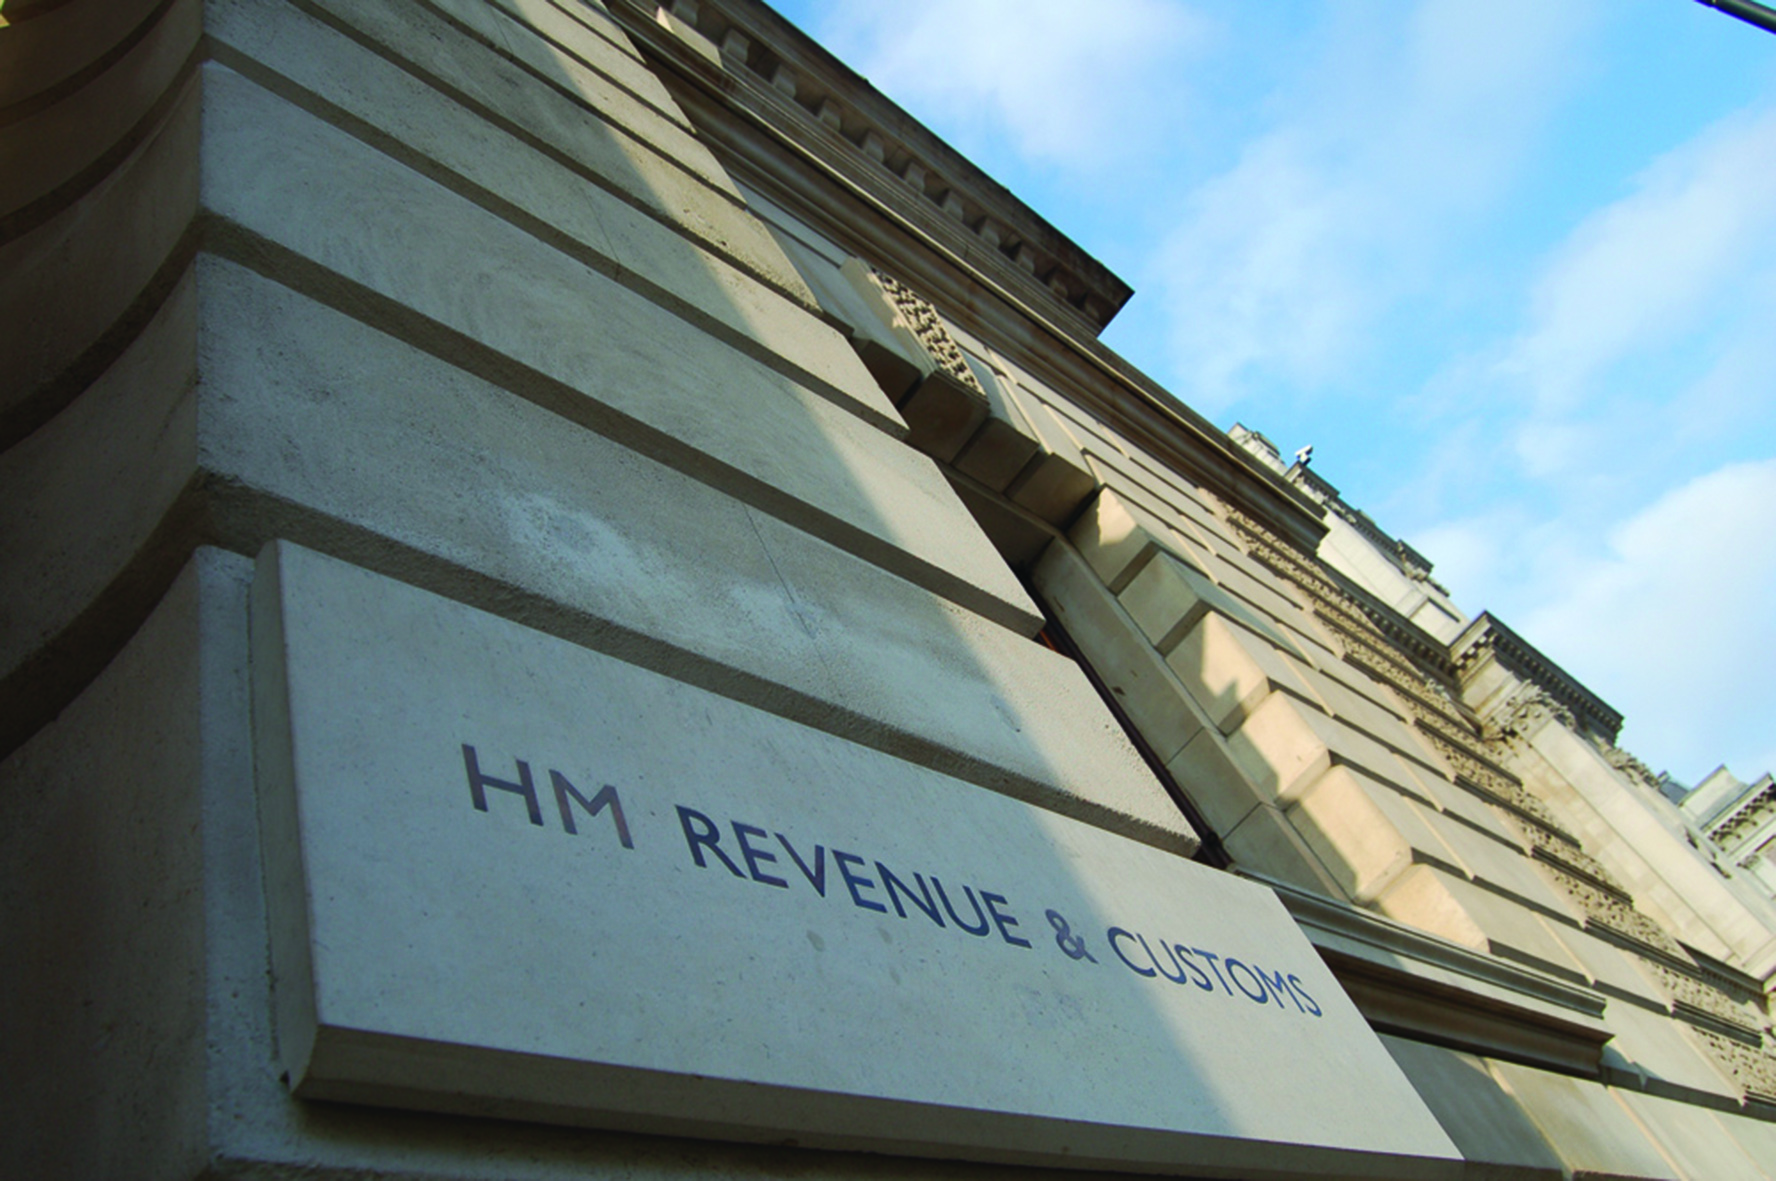 Taxing issue: HM Revenue & Customs is investigating offshore sister companies as well as VAT fraud cases